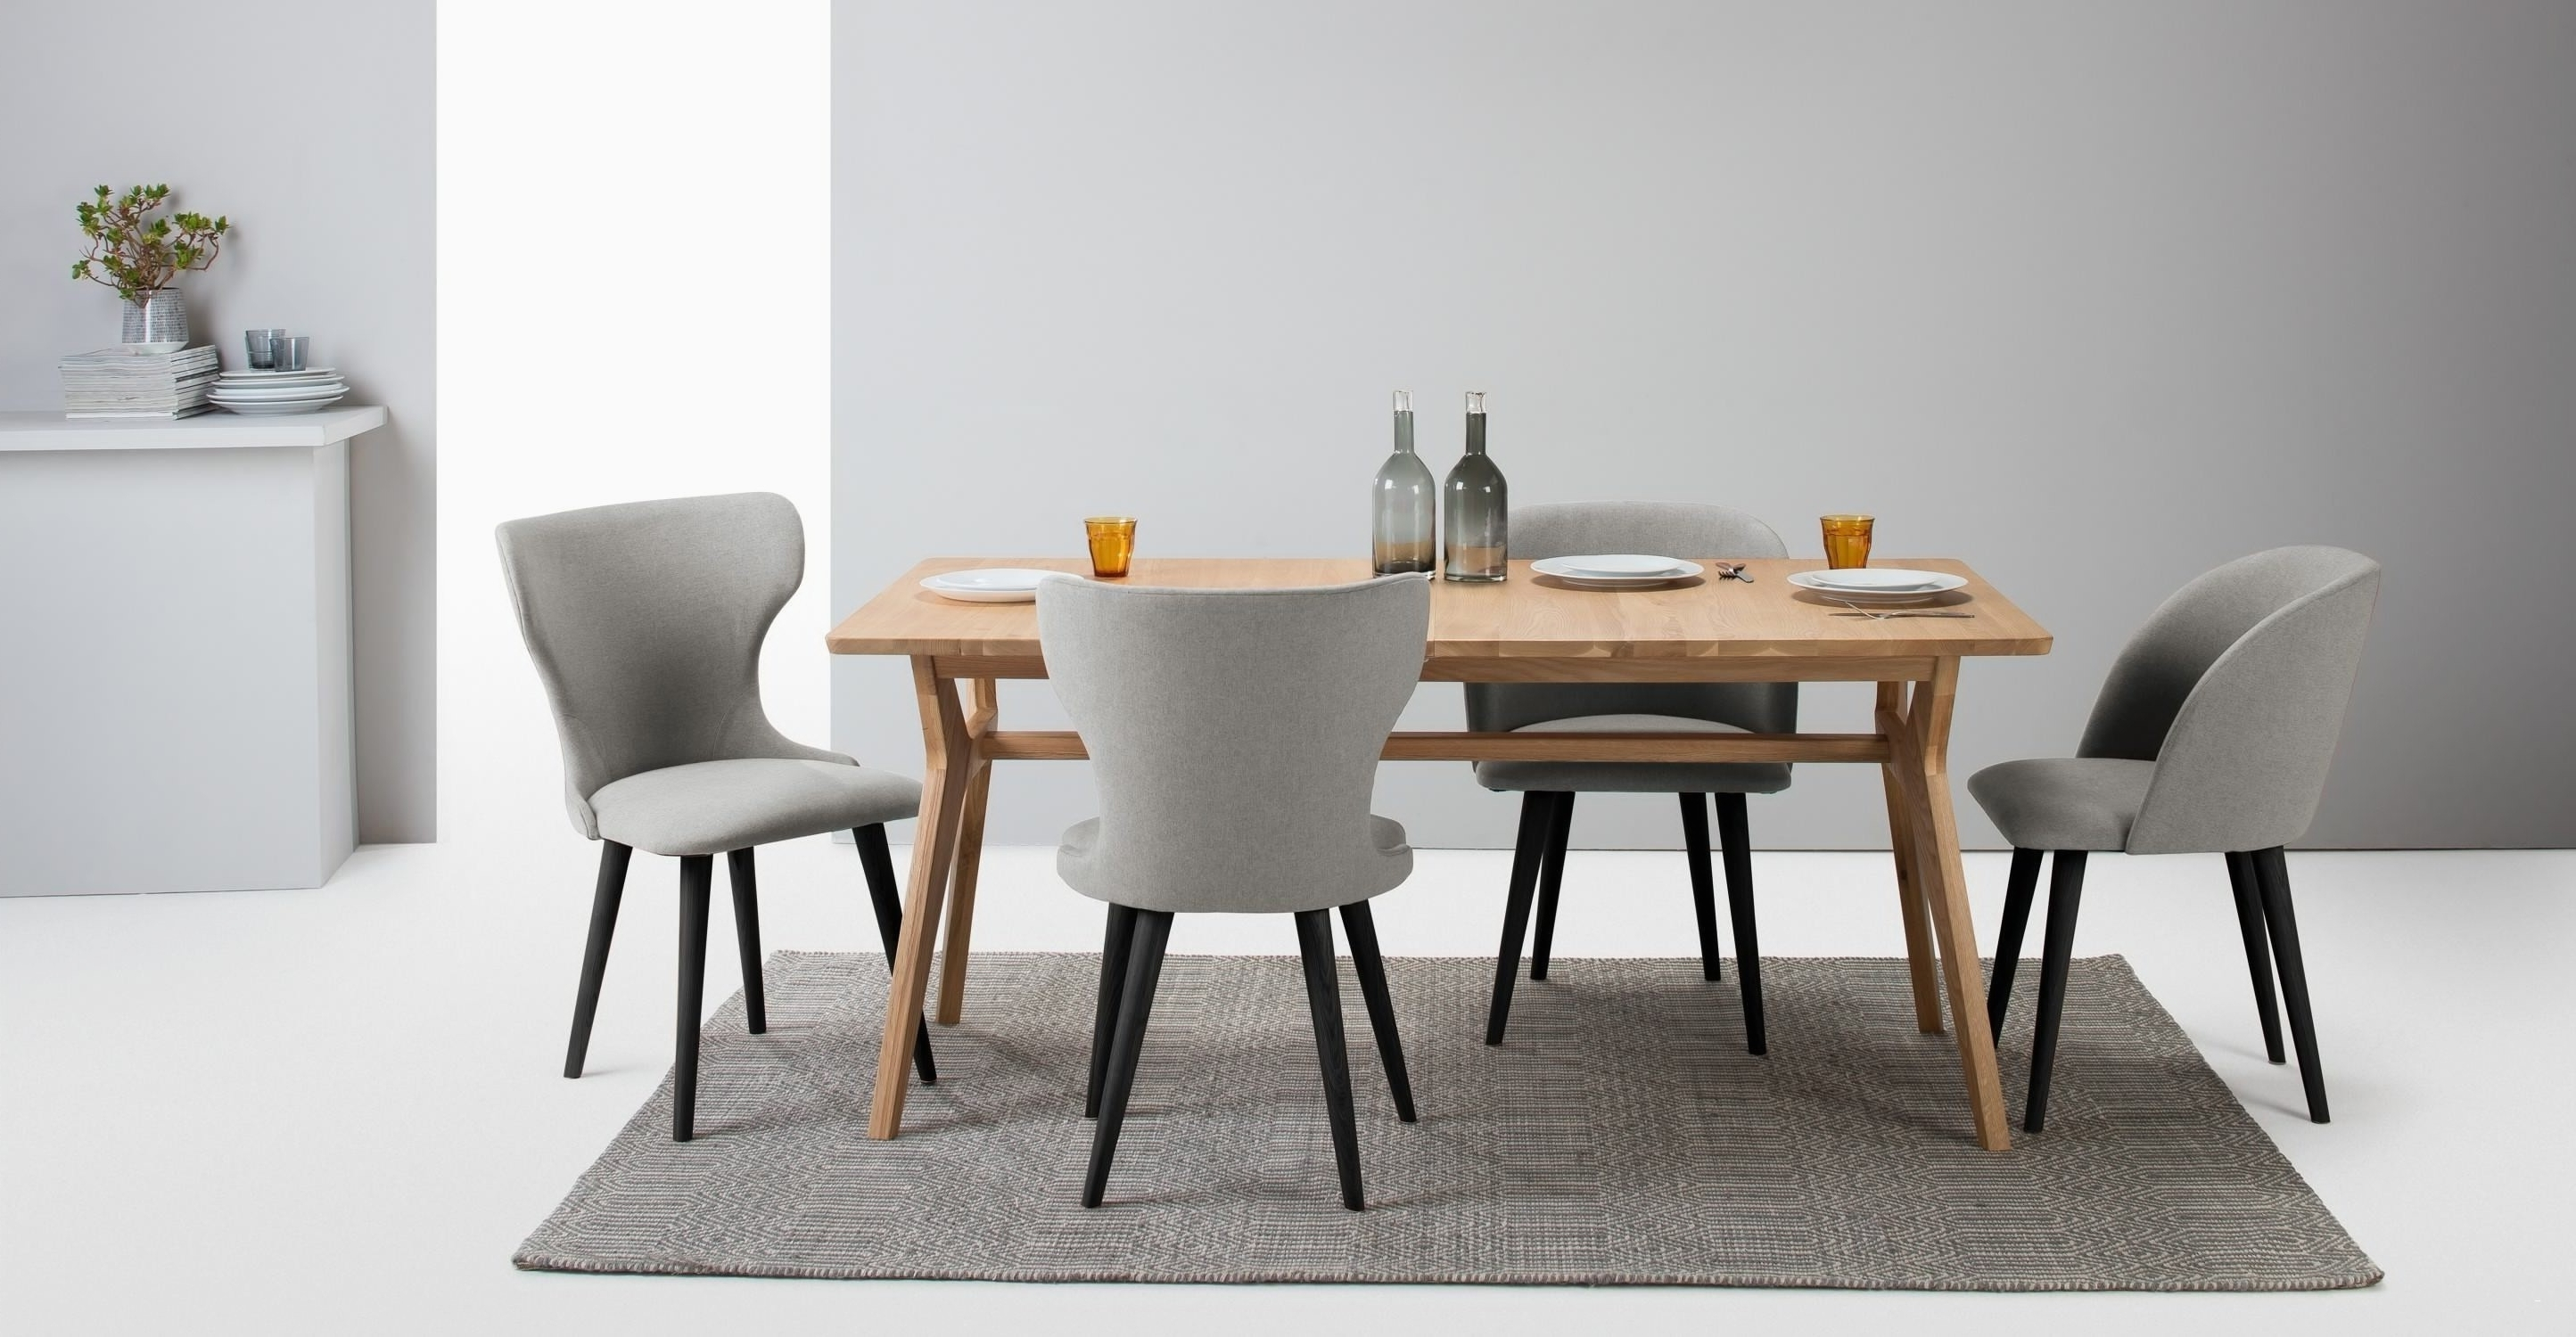 Hayden Dining Tables For Fashionable Parsons Dining Table West Elm Lovely West Elm Dining Table Fresh (View 8 of 25)